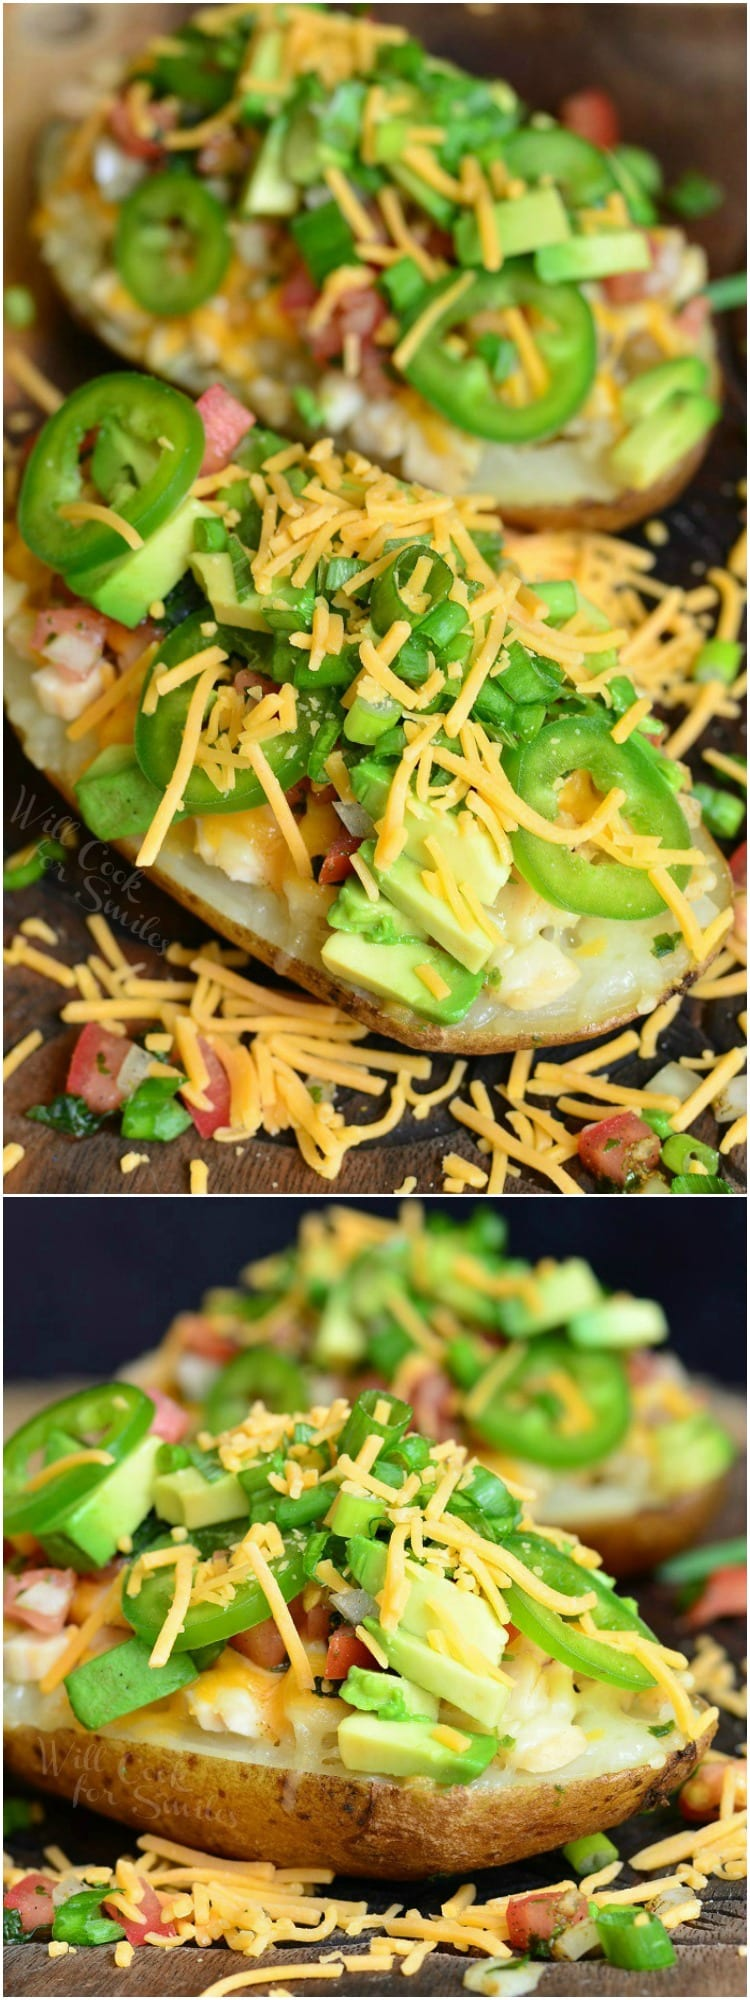 Fiesta Chicken Twice Baked Potato | from willcookforsmiles.com #potatoes